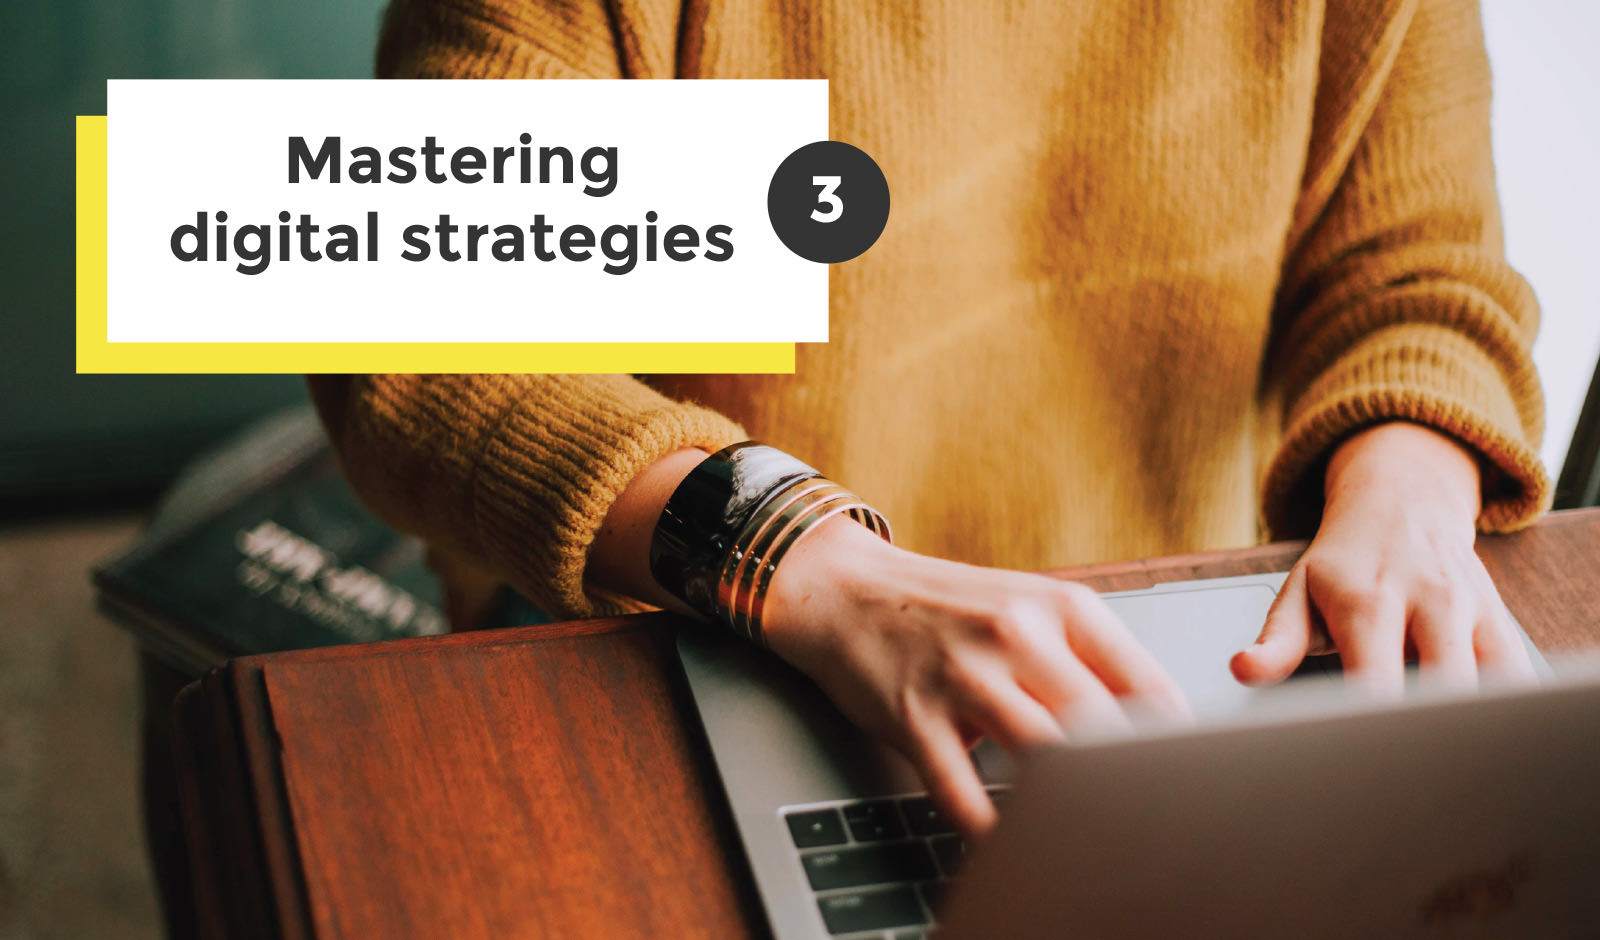 Lemon Tree Marketing Blog Image about Mastering Digital Strategies - Part 3